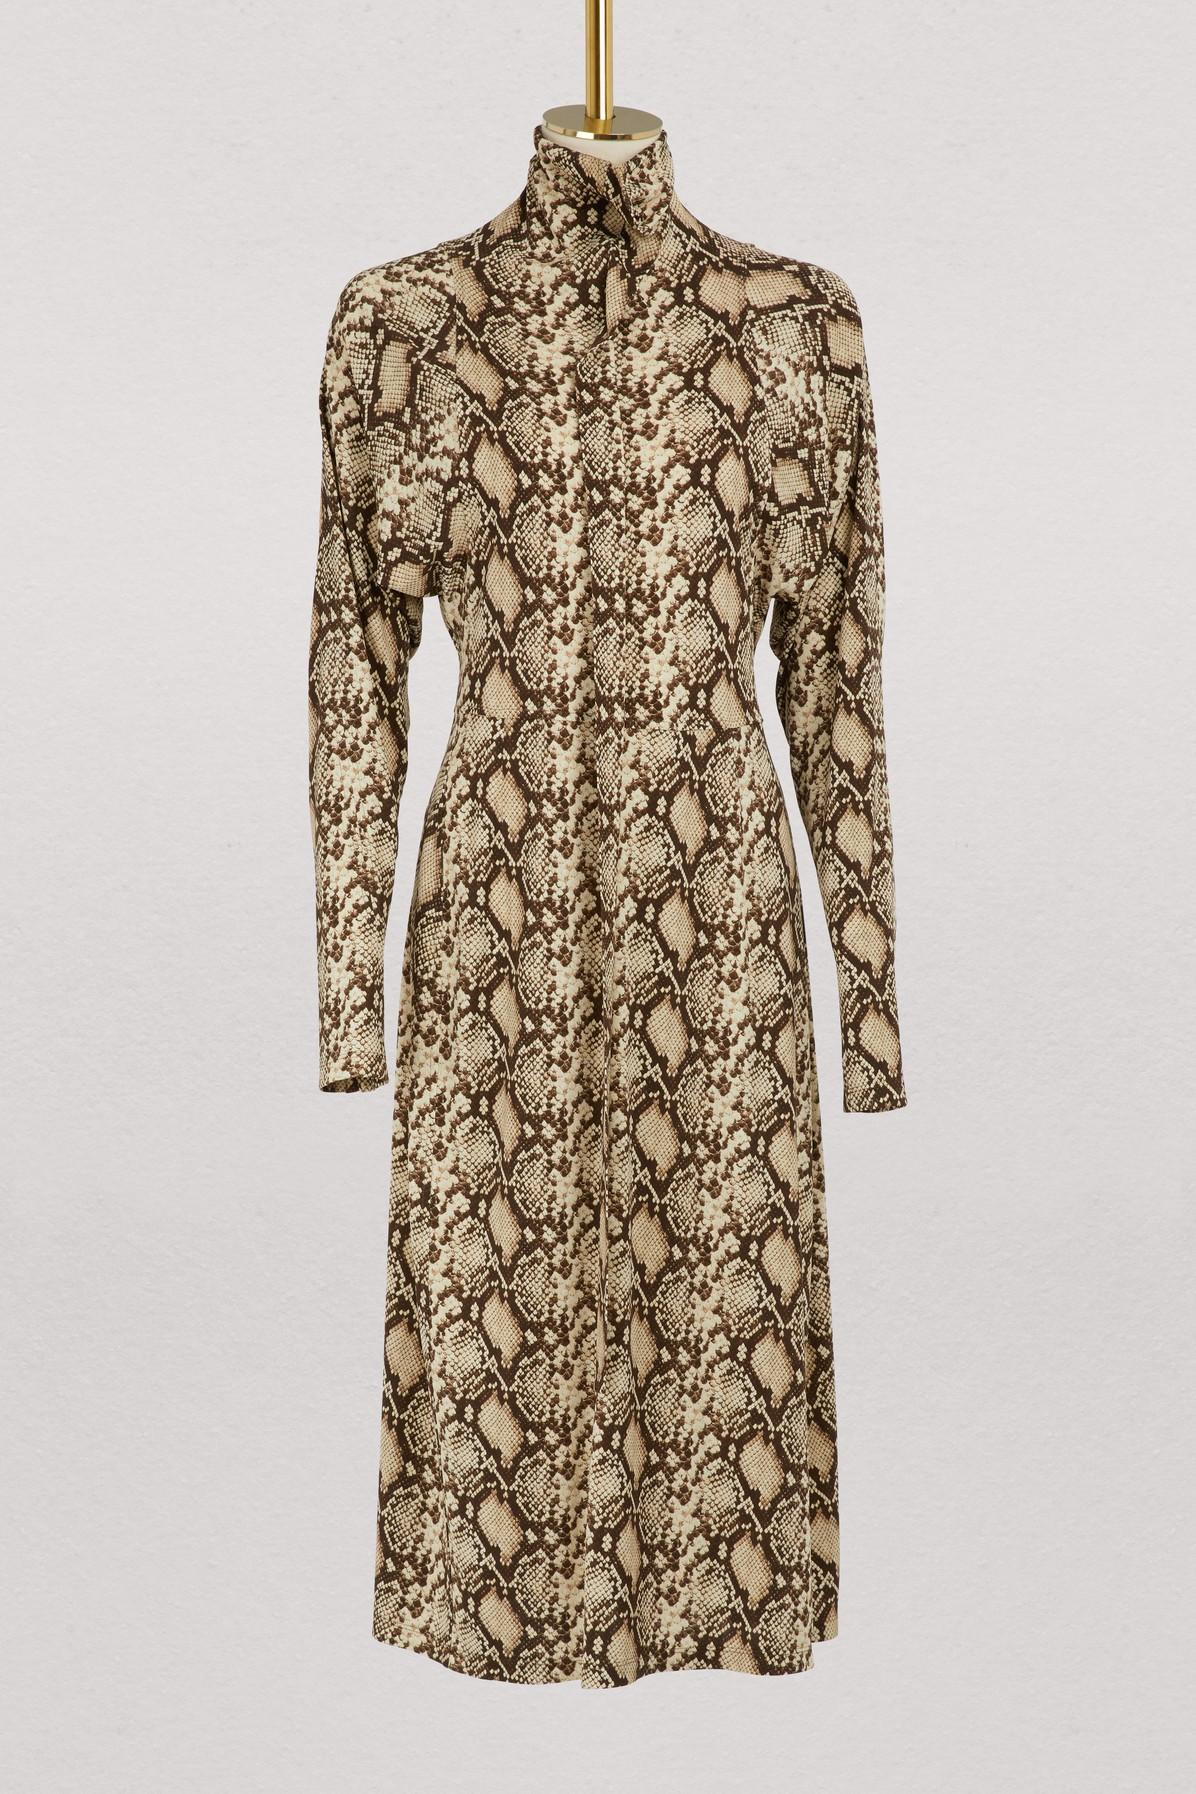 Mock Neck Dress In Snake Printed Crepe Jersey in Python